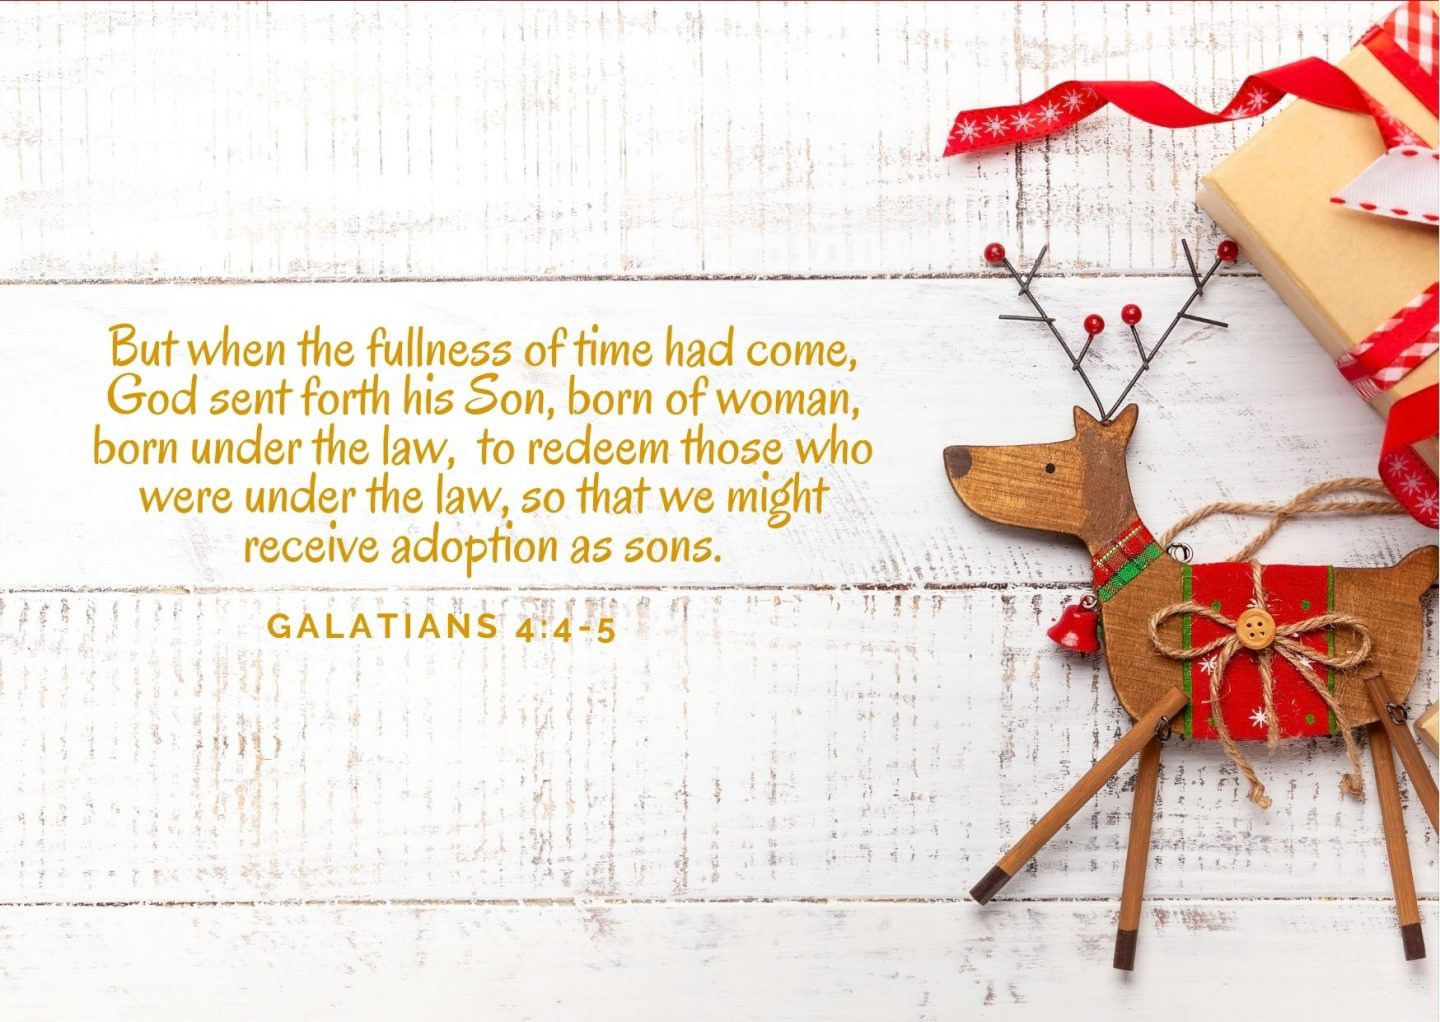 But when the fullness of time had come, God sent forth his Son, born of woman, born under the law, to redeem those who were under the law, so that we might receive adoption as sons. Galatians 4:4-5